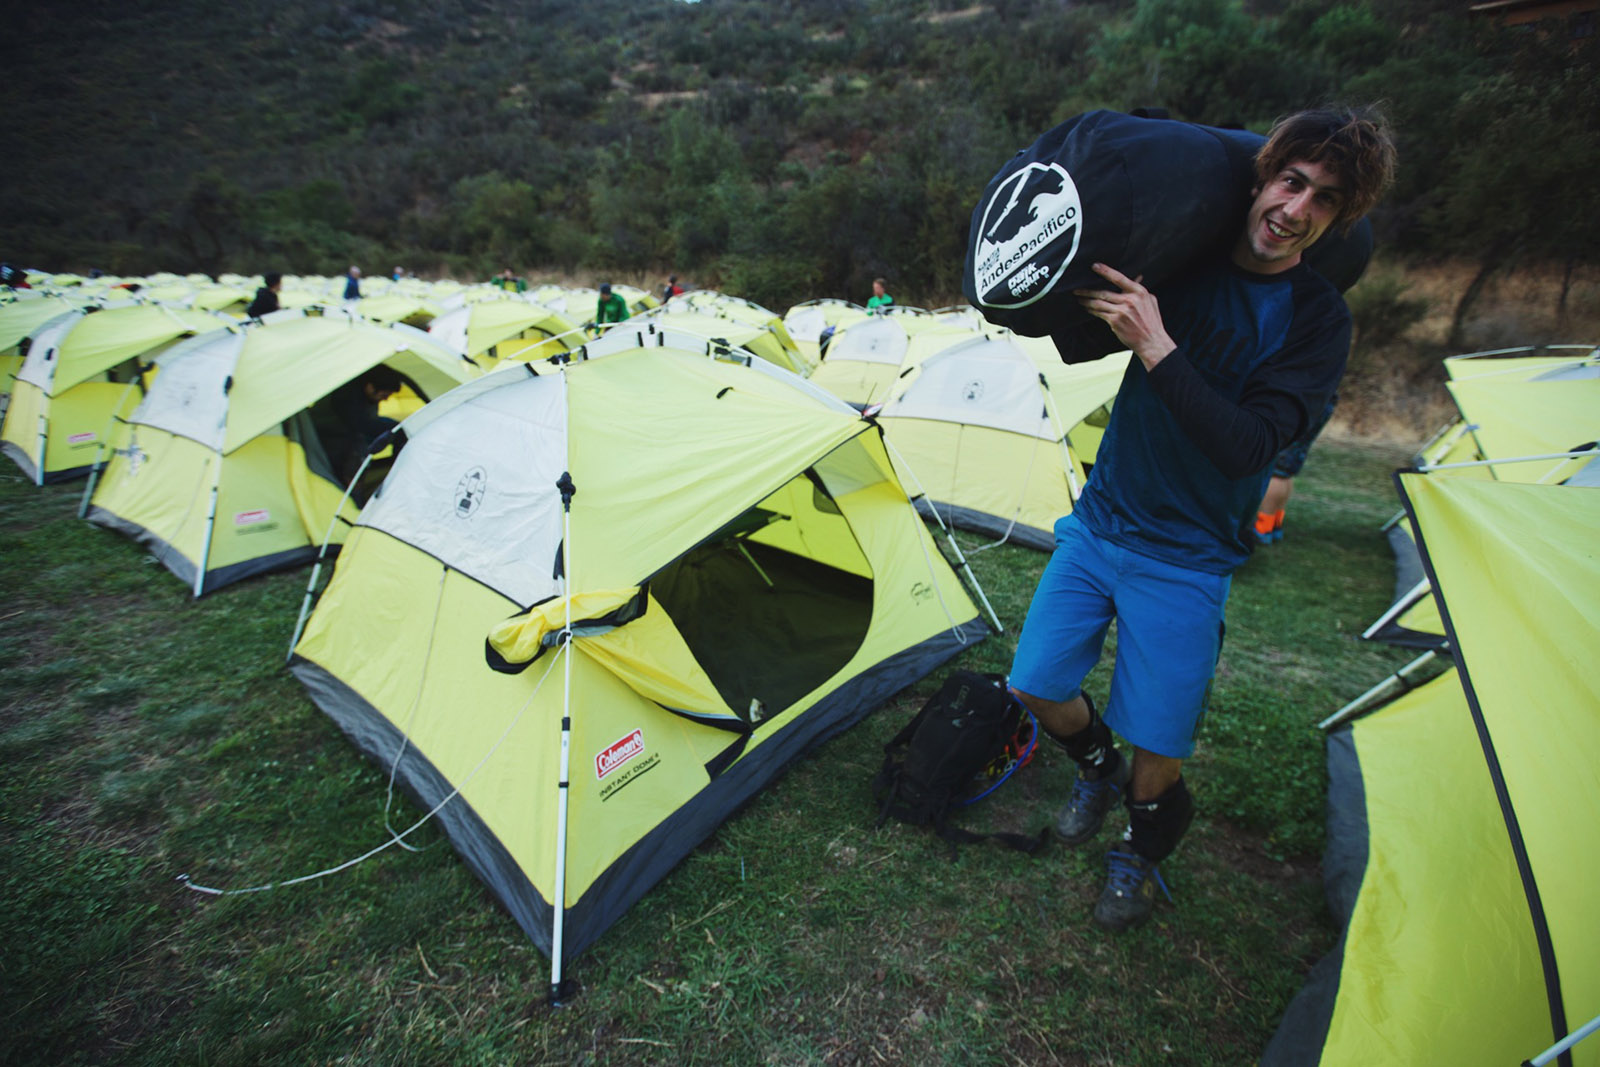 Santa Cruz Bicycles - Josh Bryceland - Ratboy Packing Up for the Day at Andes Pacifico